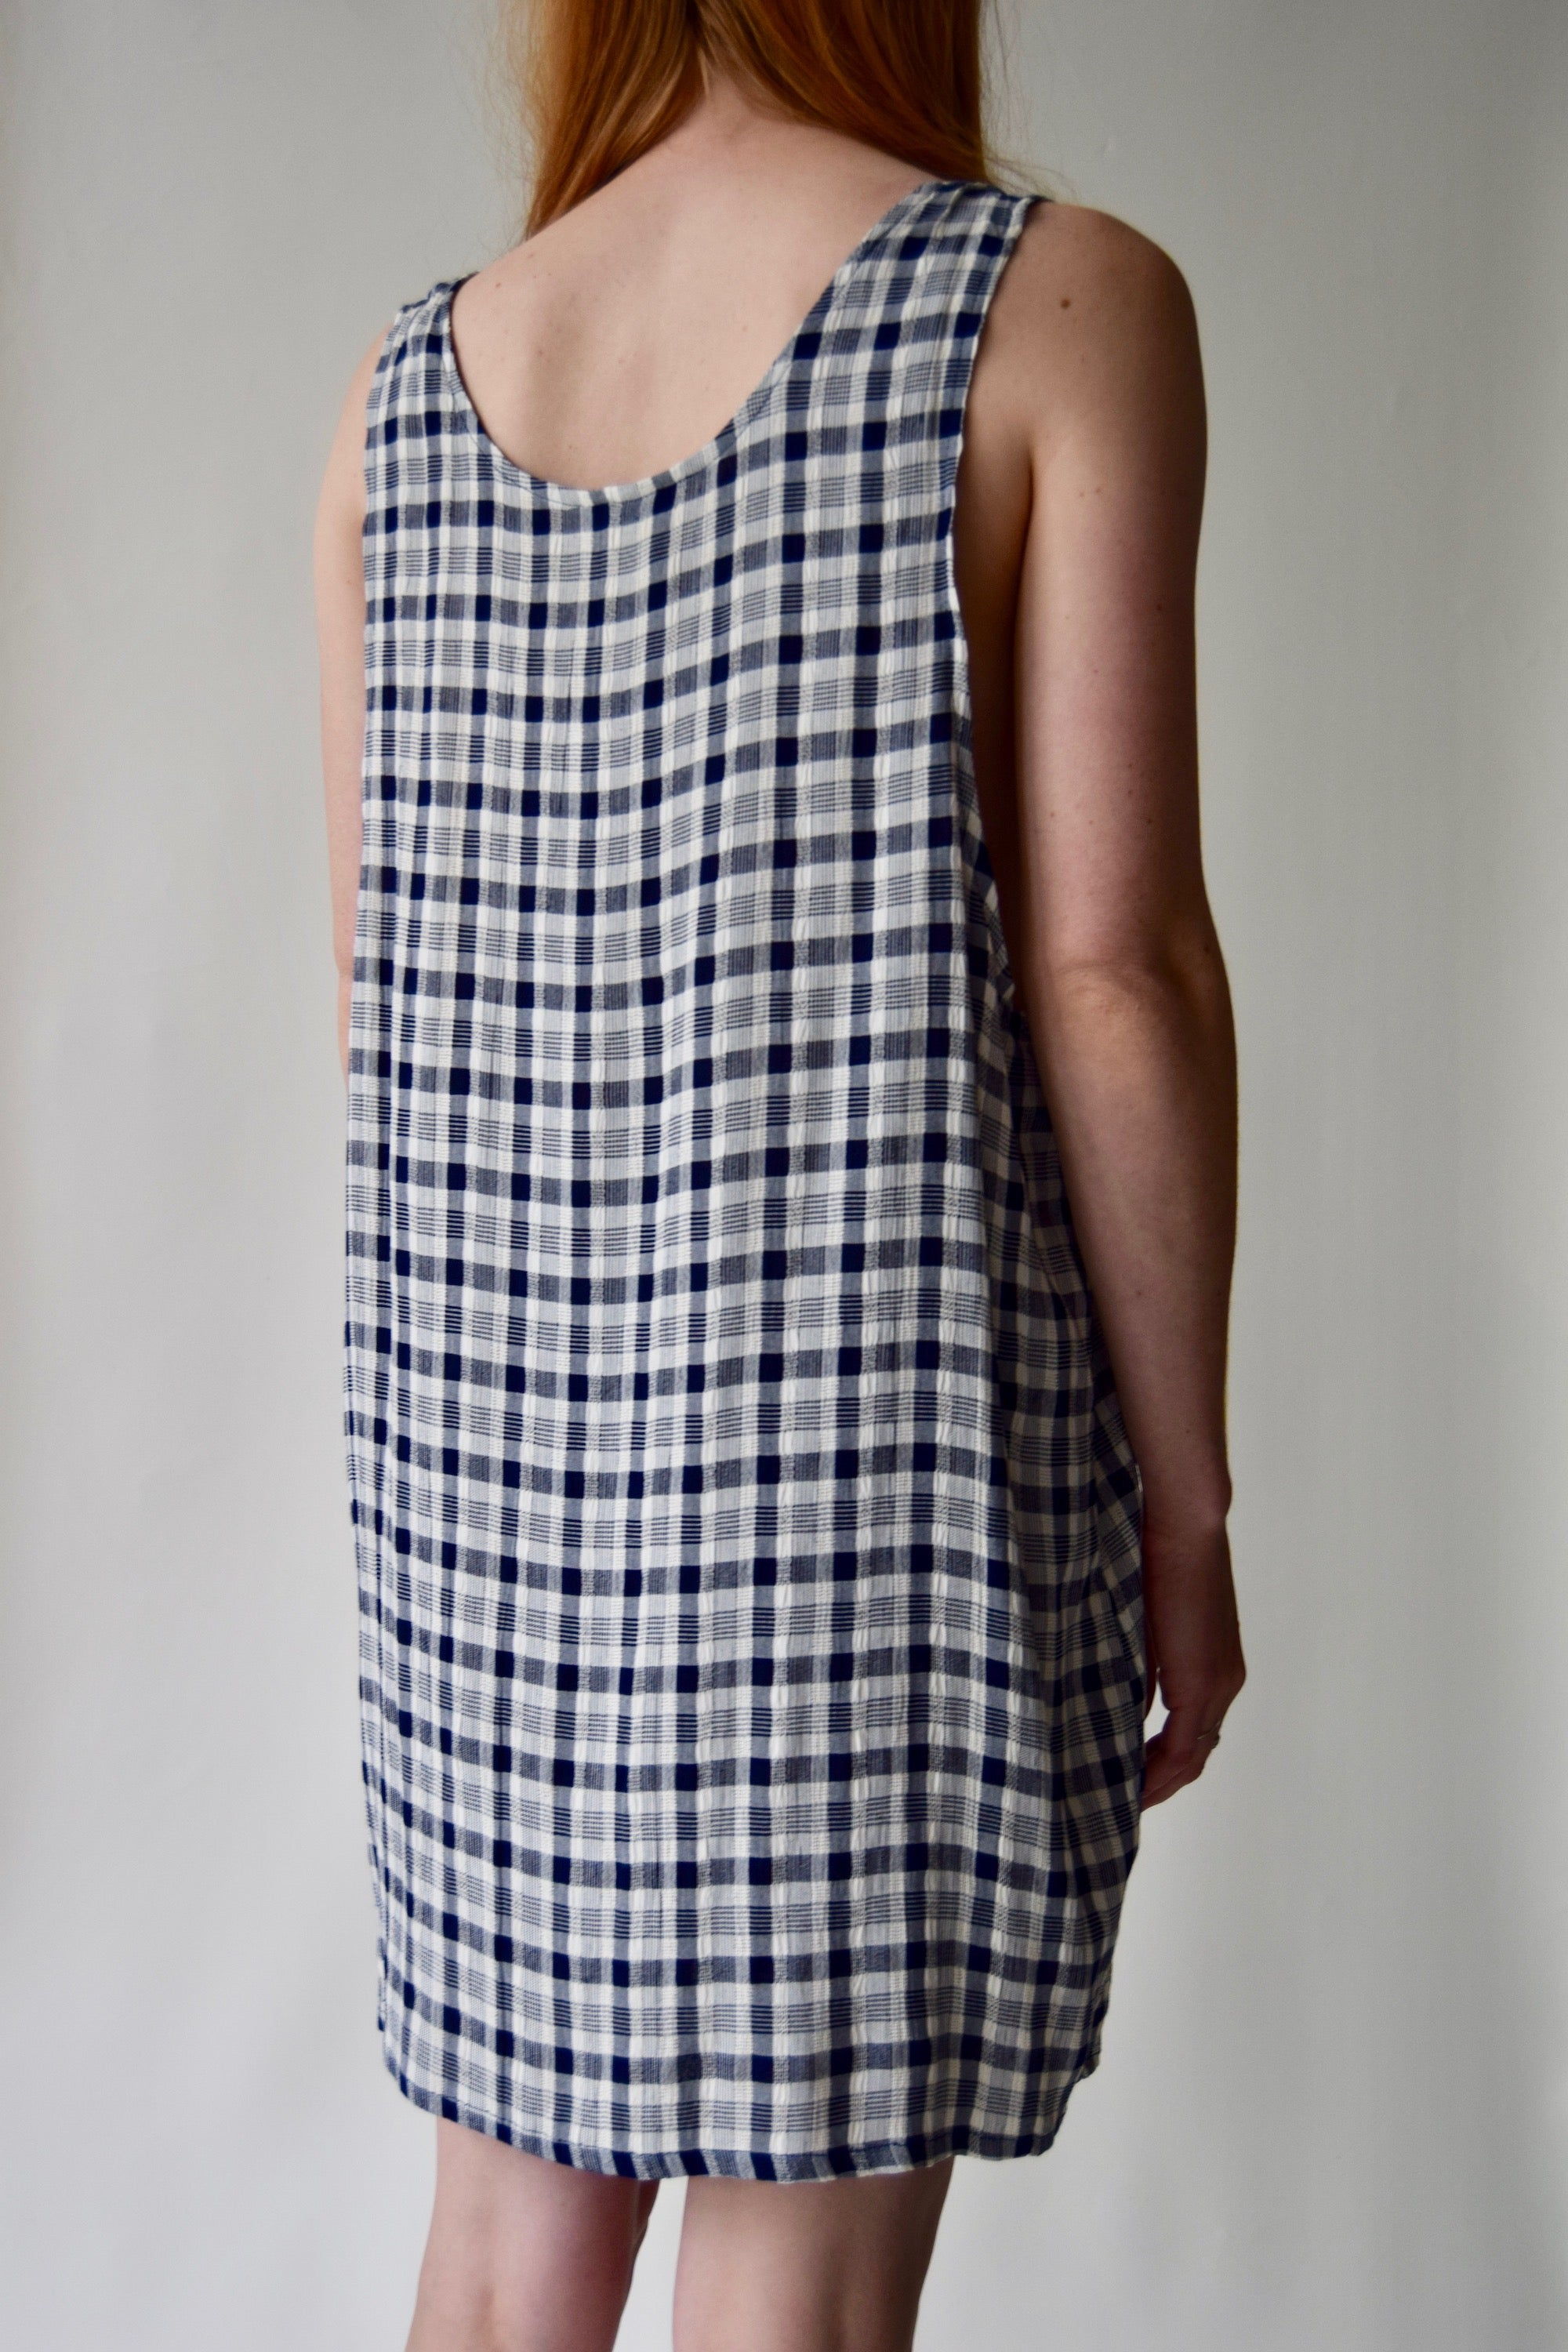 Navy and White Picnic Inspired Summer Dress